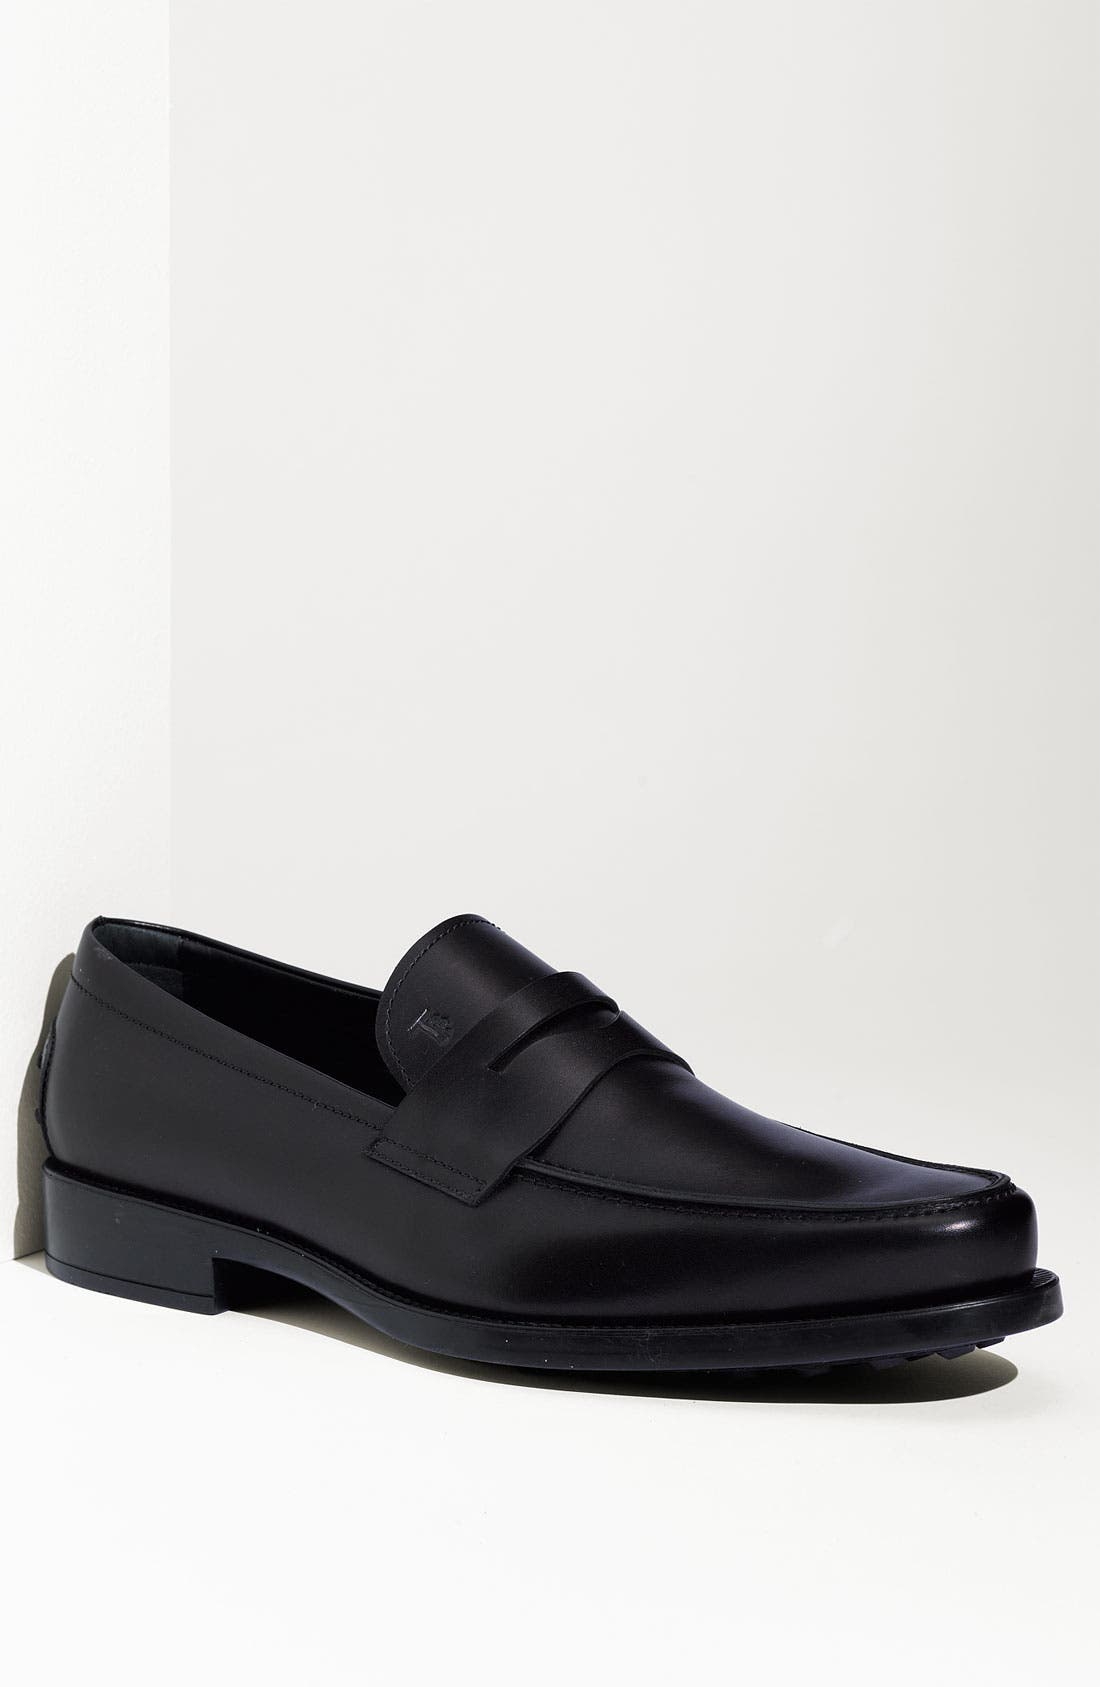 'Boston' Penny Loafer,                         Main,                         color, 001